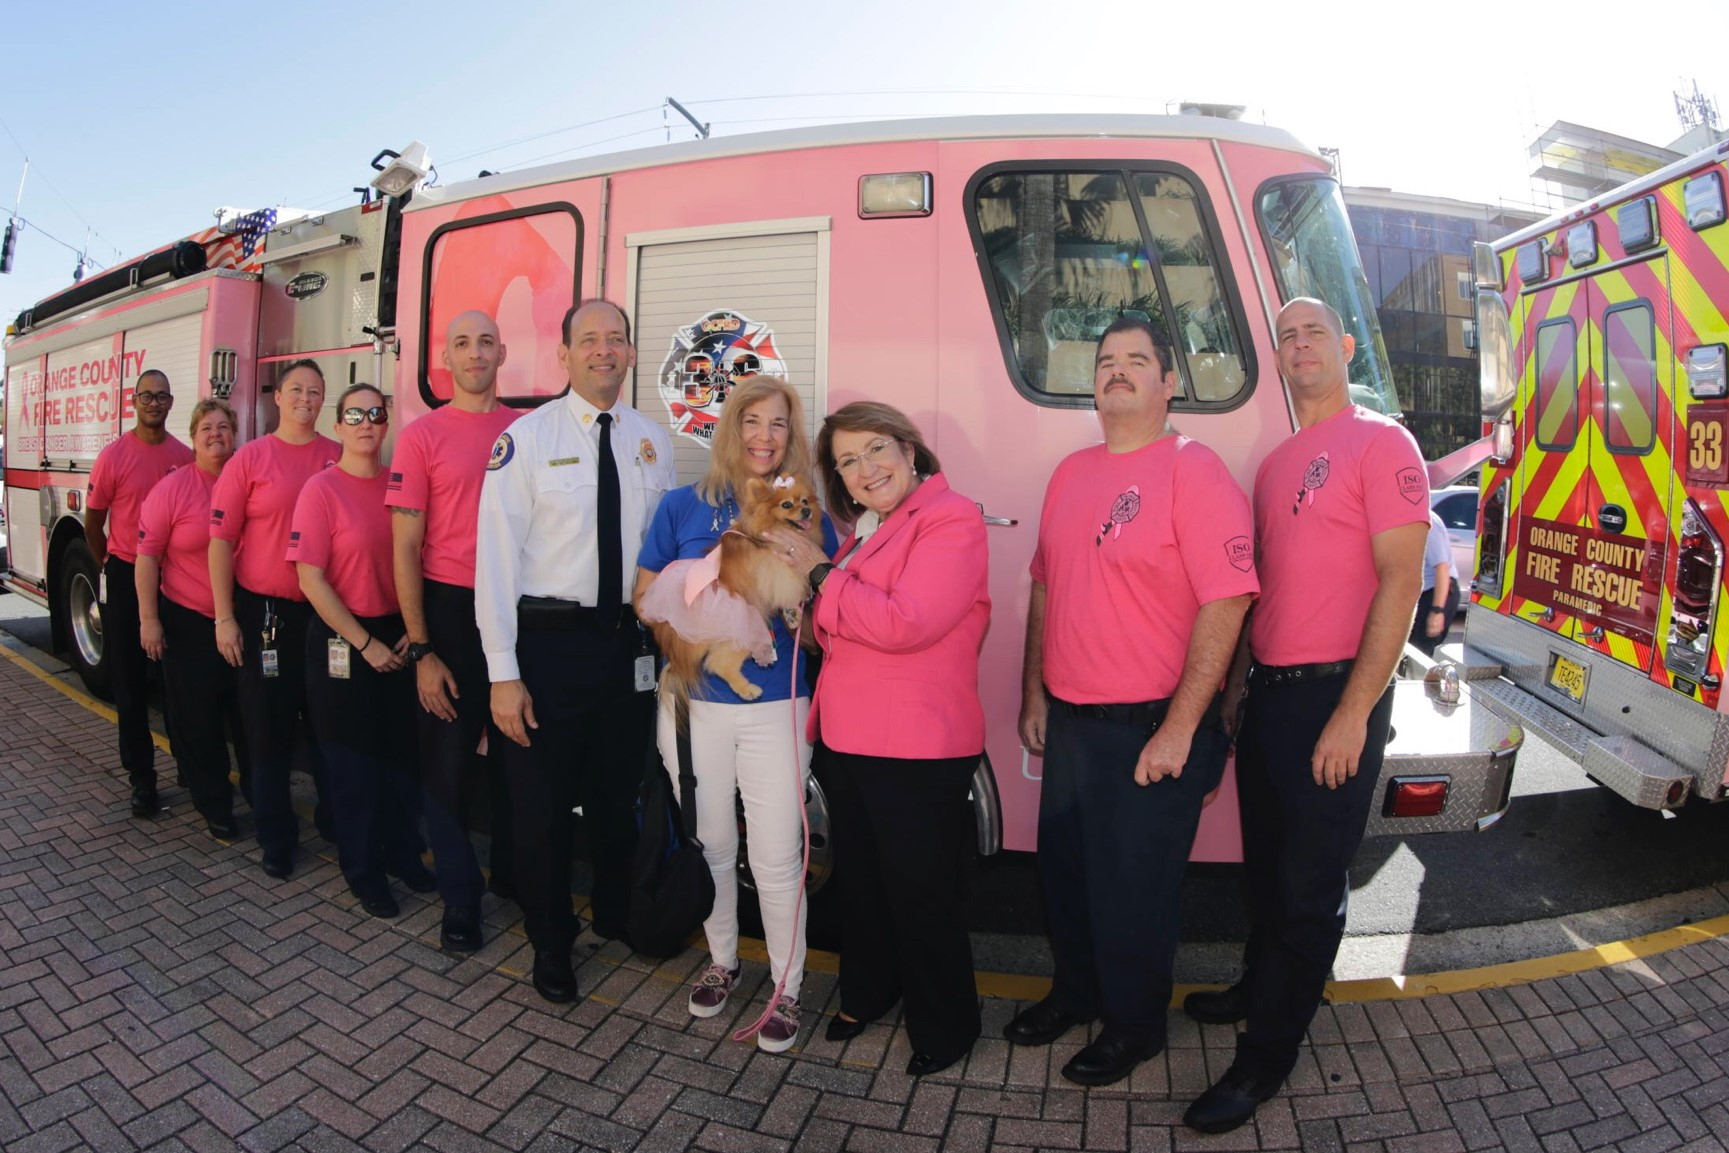 Mayor Jacobs and other leaders wearing pink shirts, holding a dog in front of a pink bus